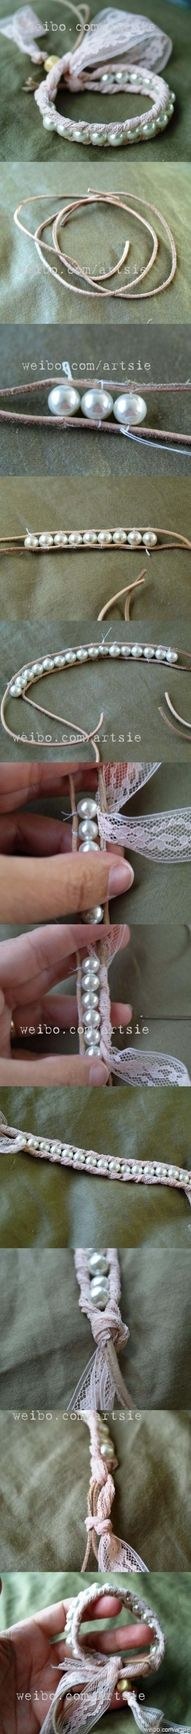 DIY Pearl and Lace Bracelet